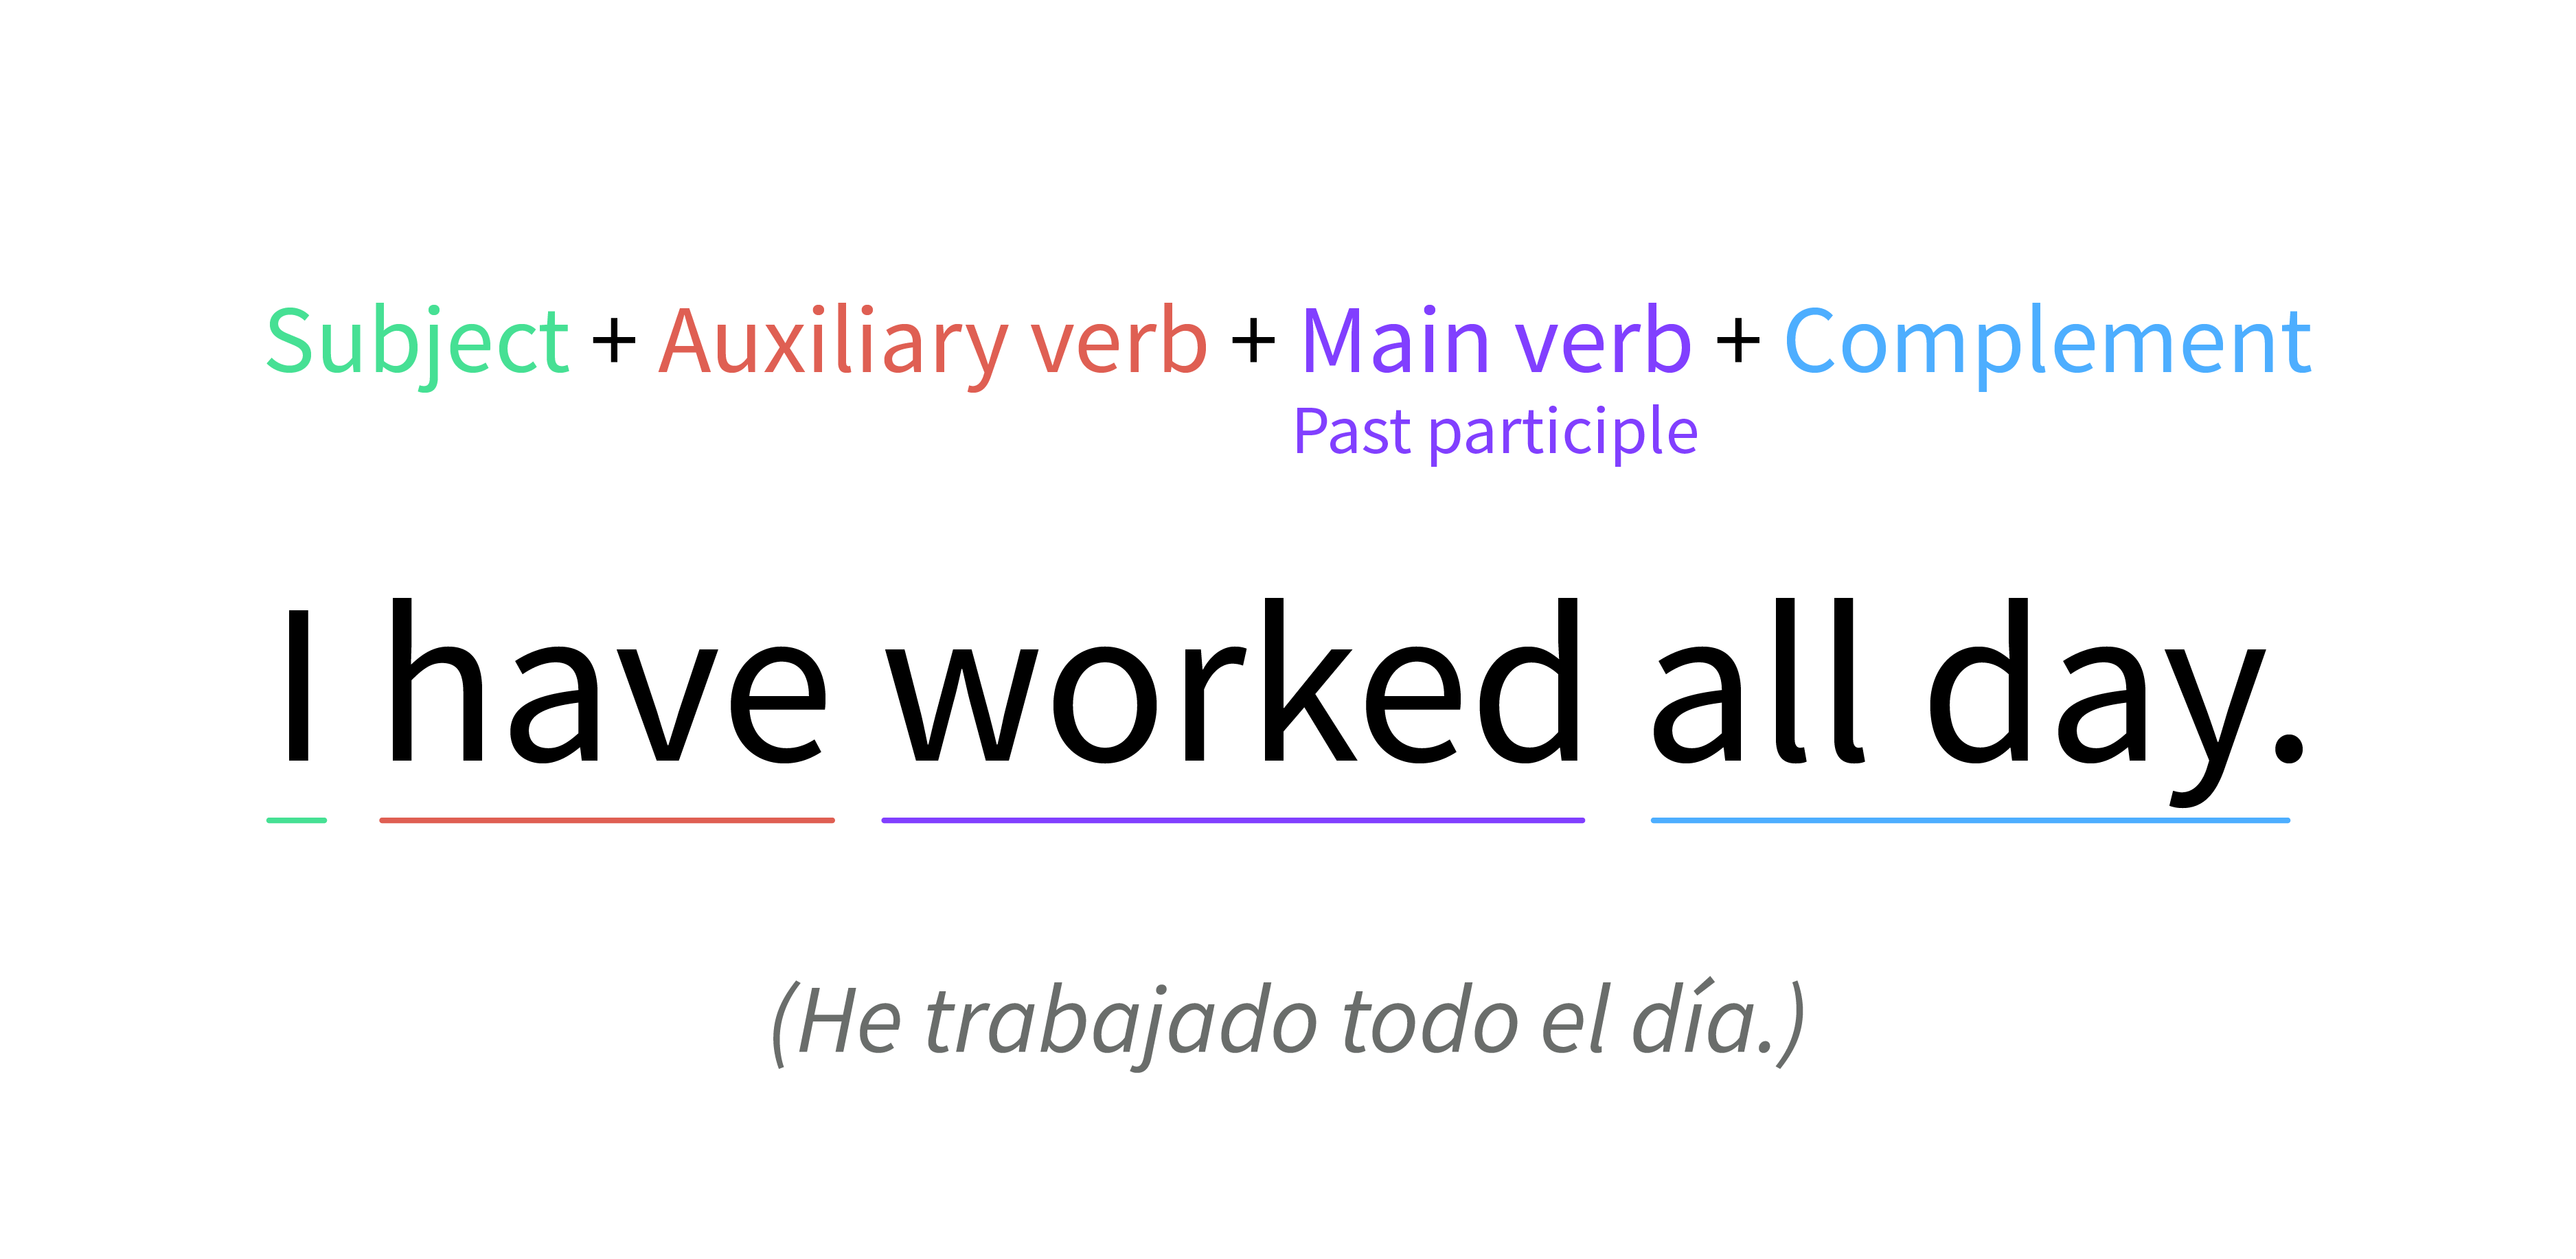 Verbo to have como auxiliar de present perfect tense.